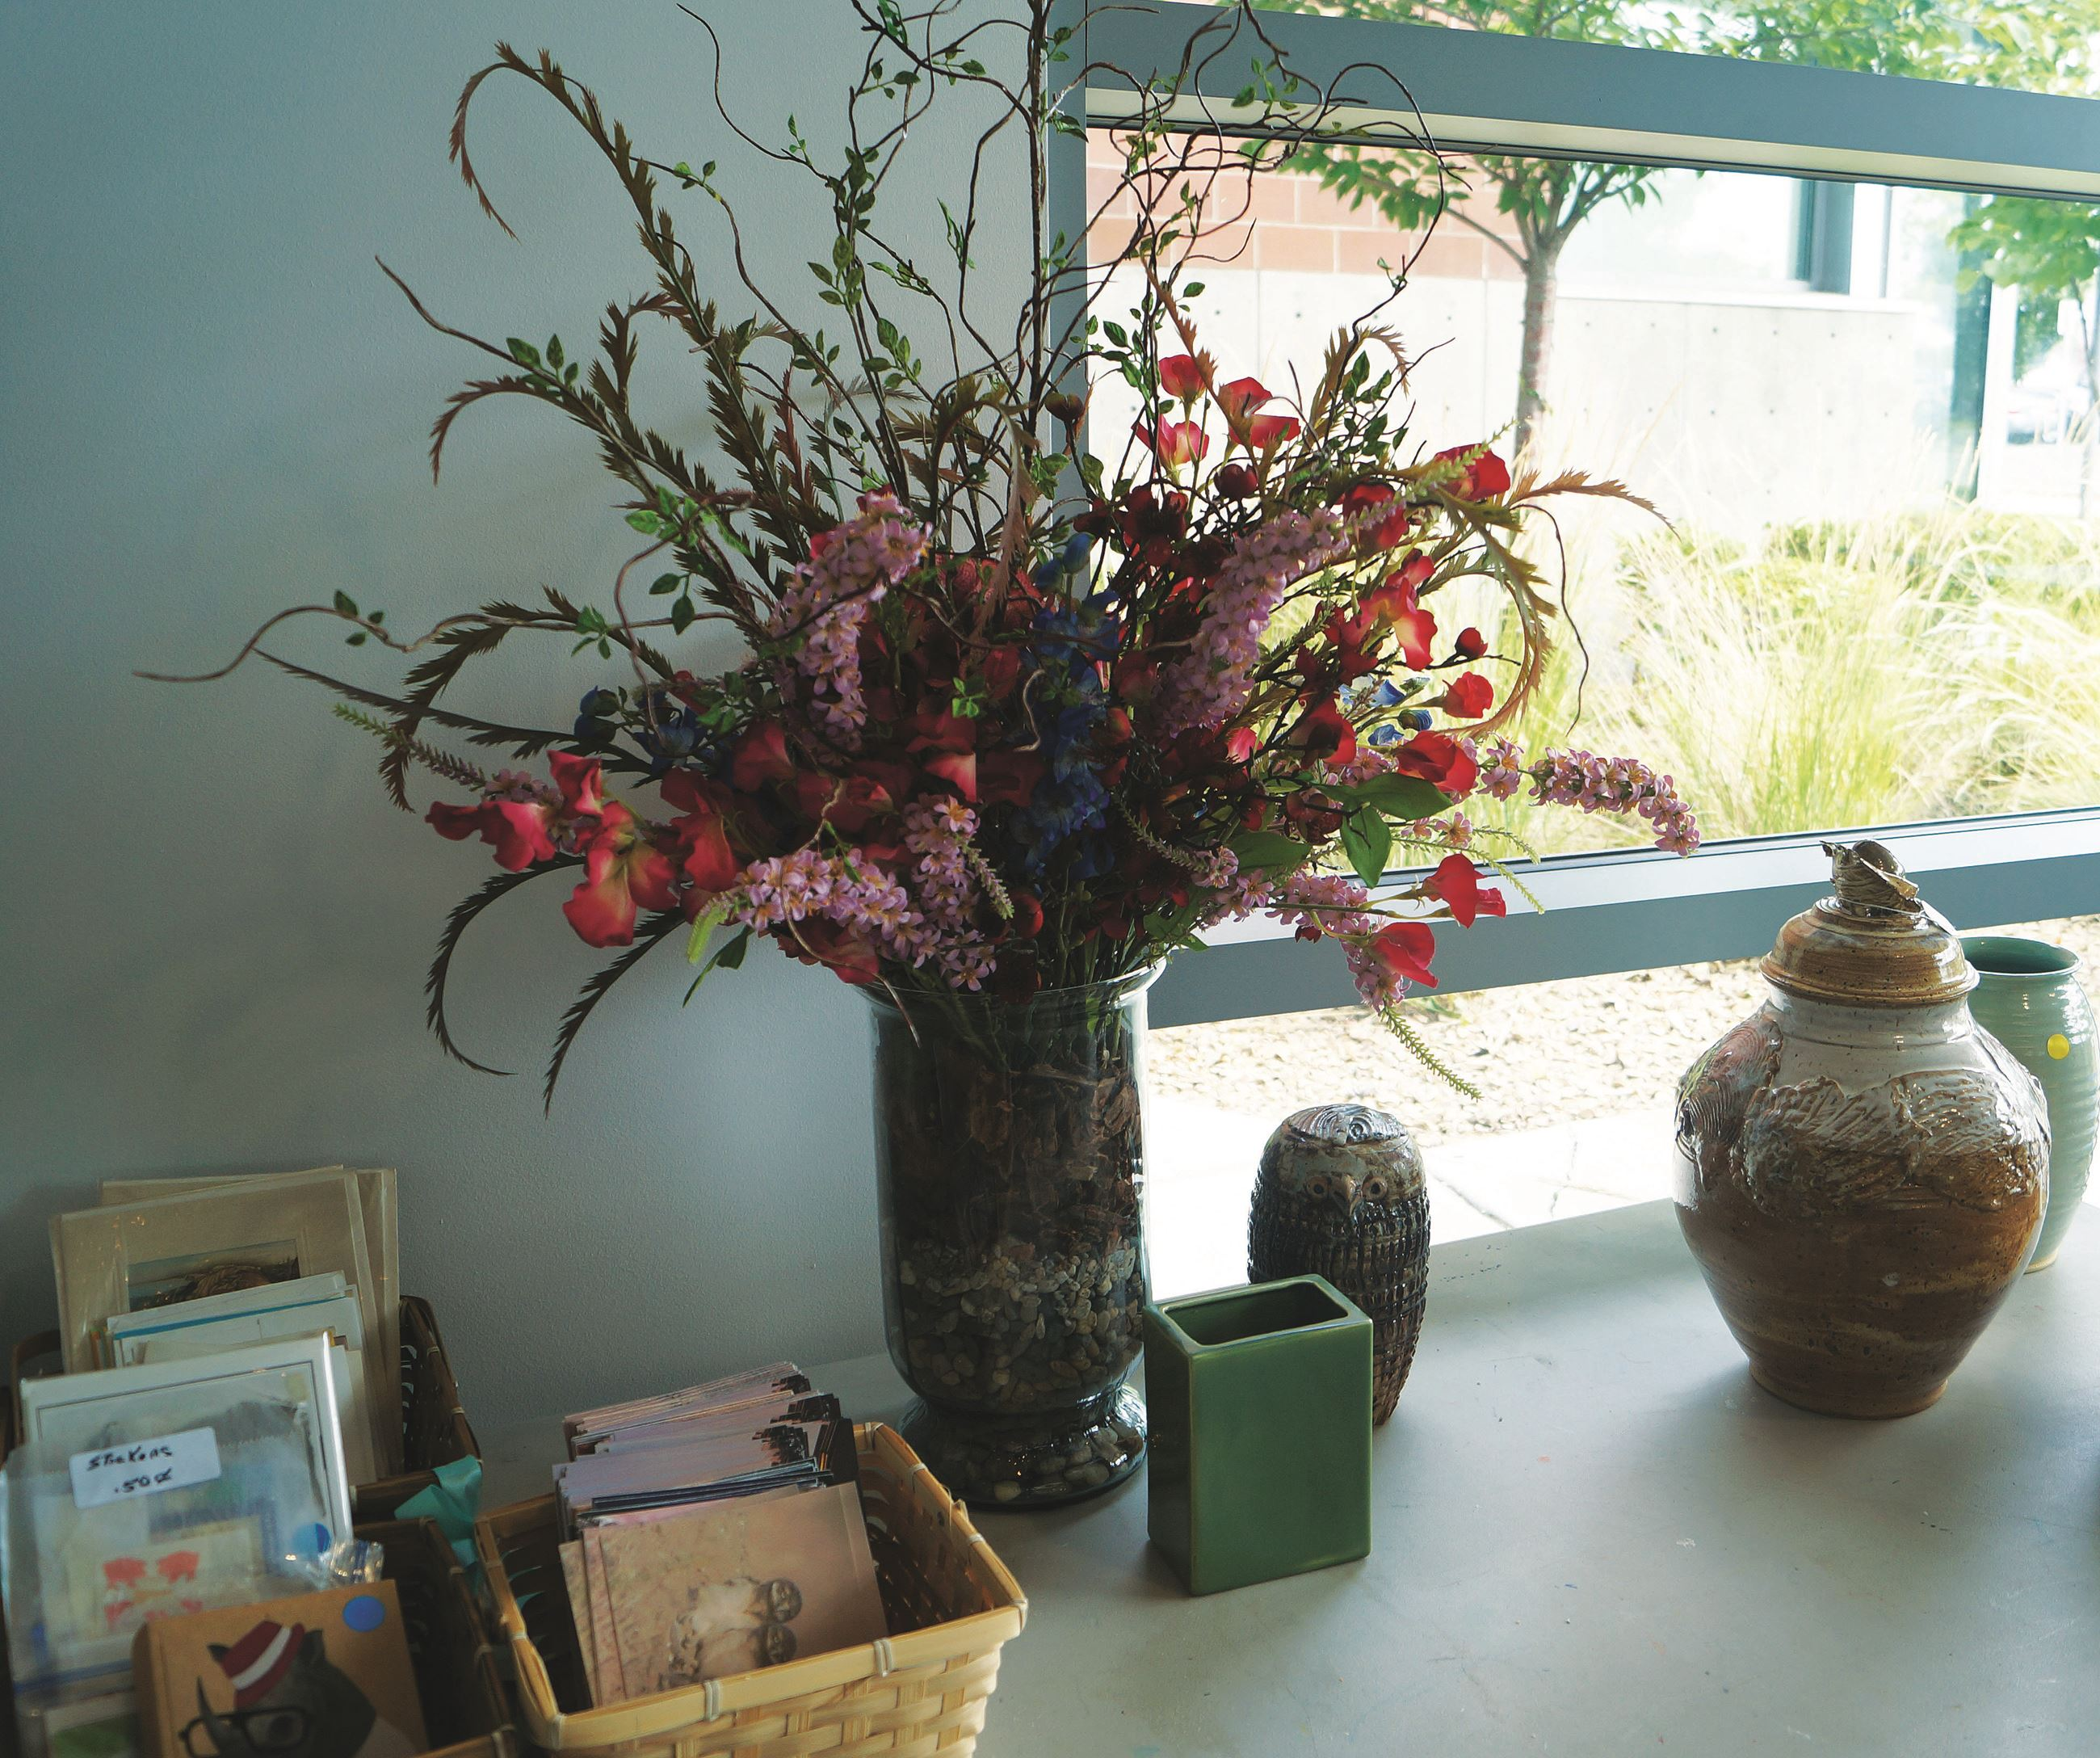 Floral display, vase, postcards